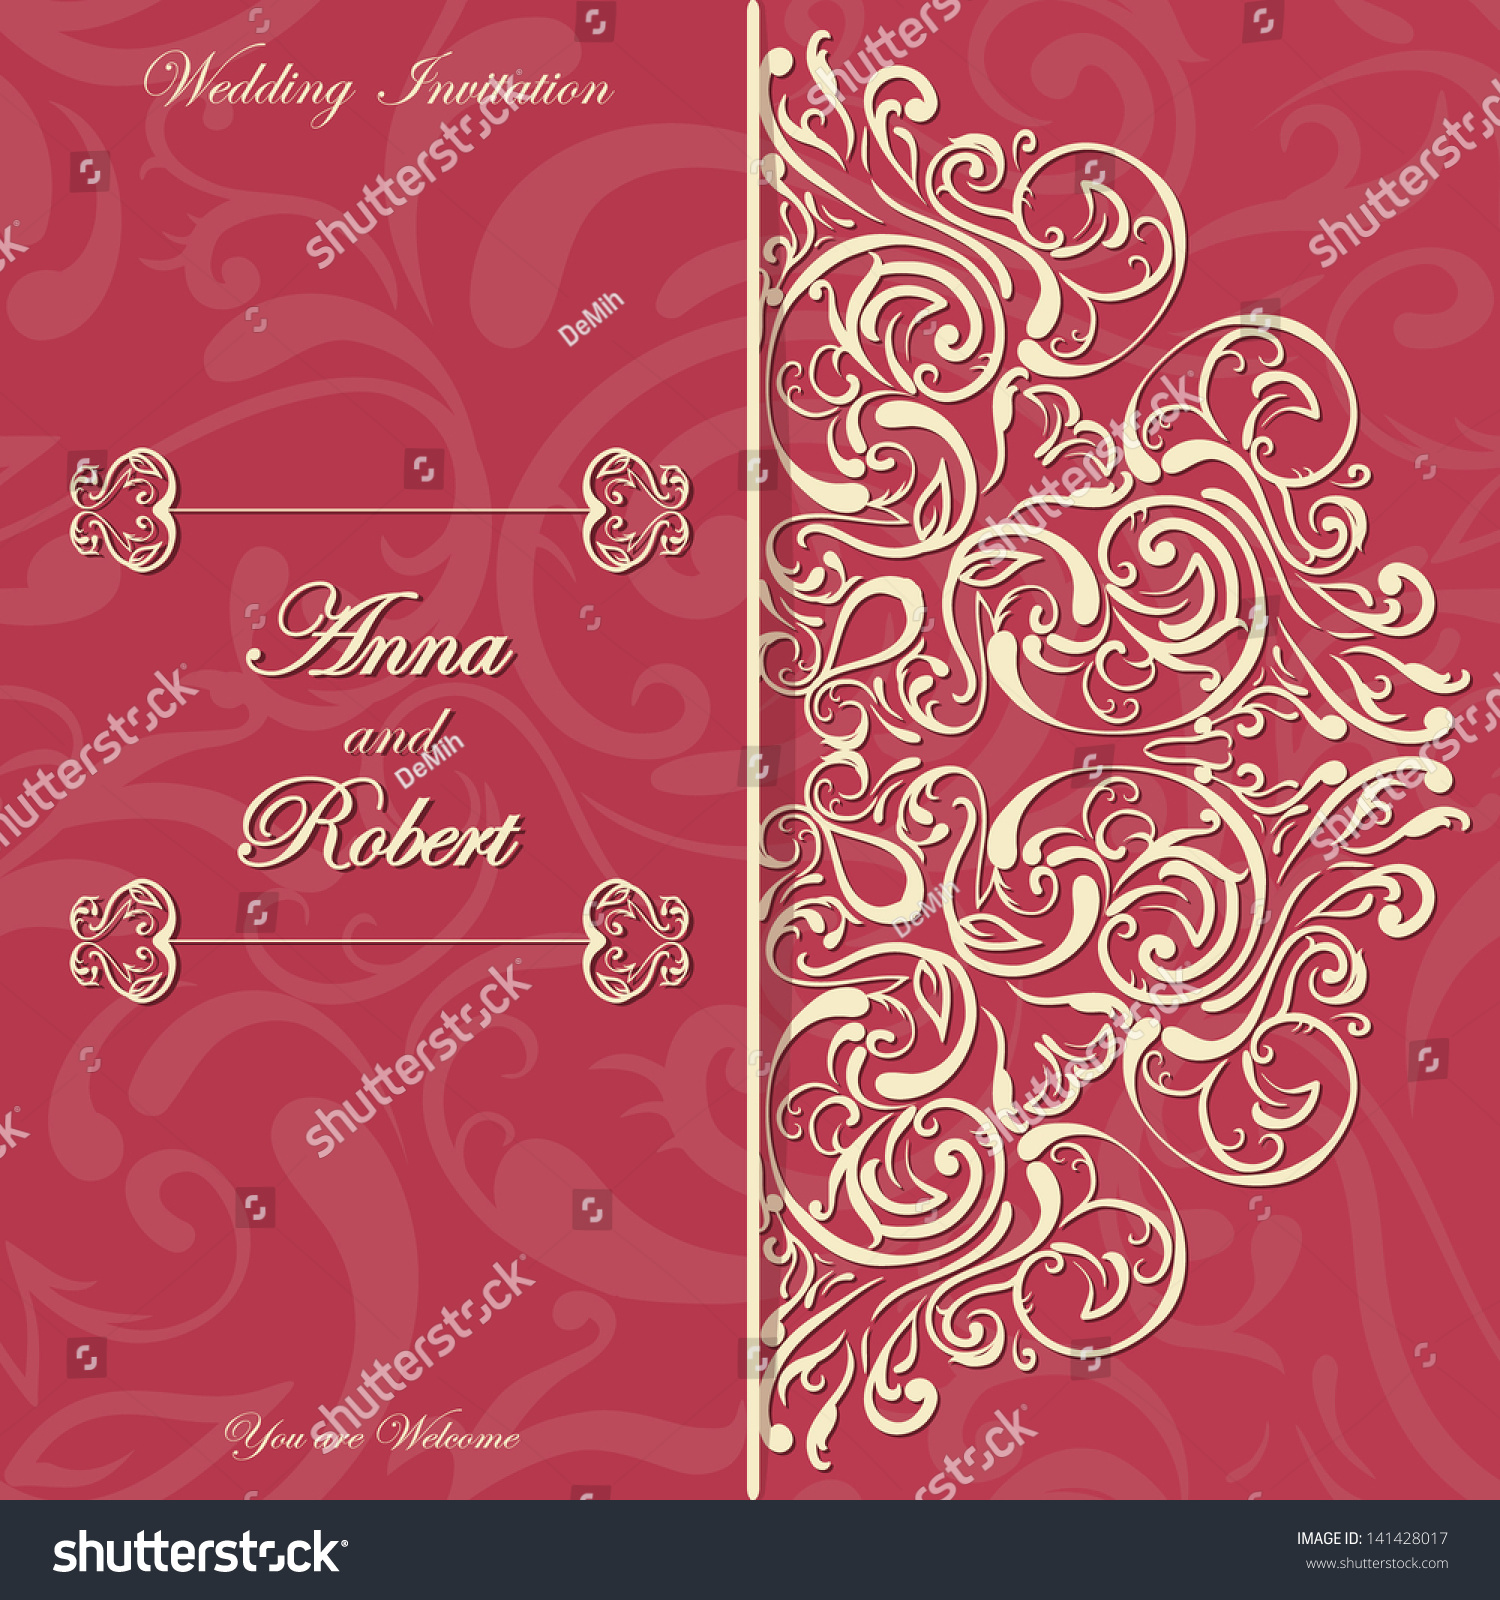 Stylish Invitation Card Round Lace Design Stock Vector (Royalty Free ...